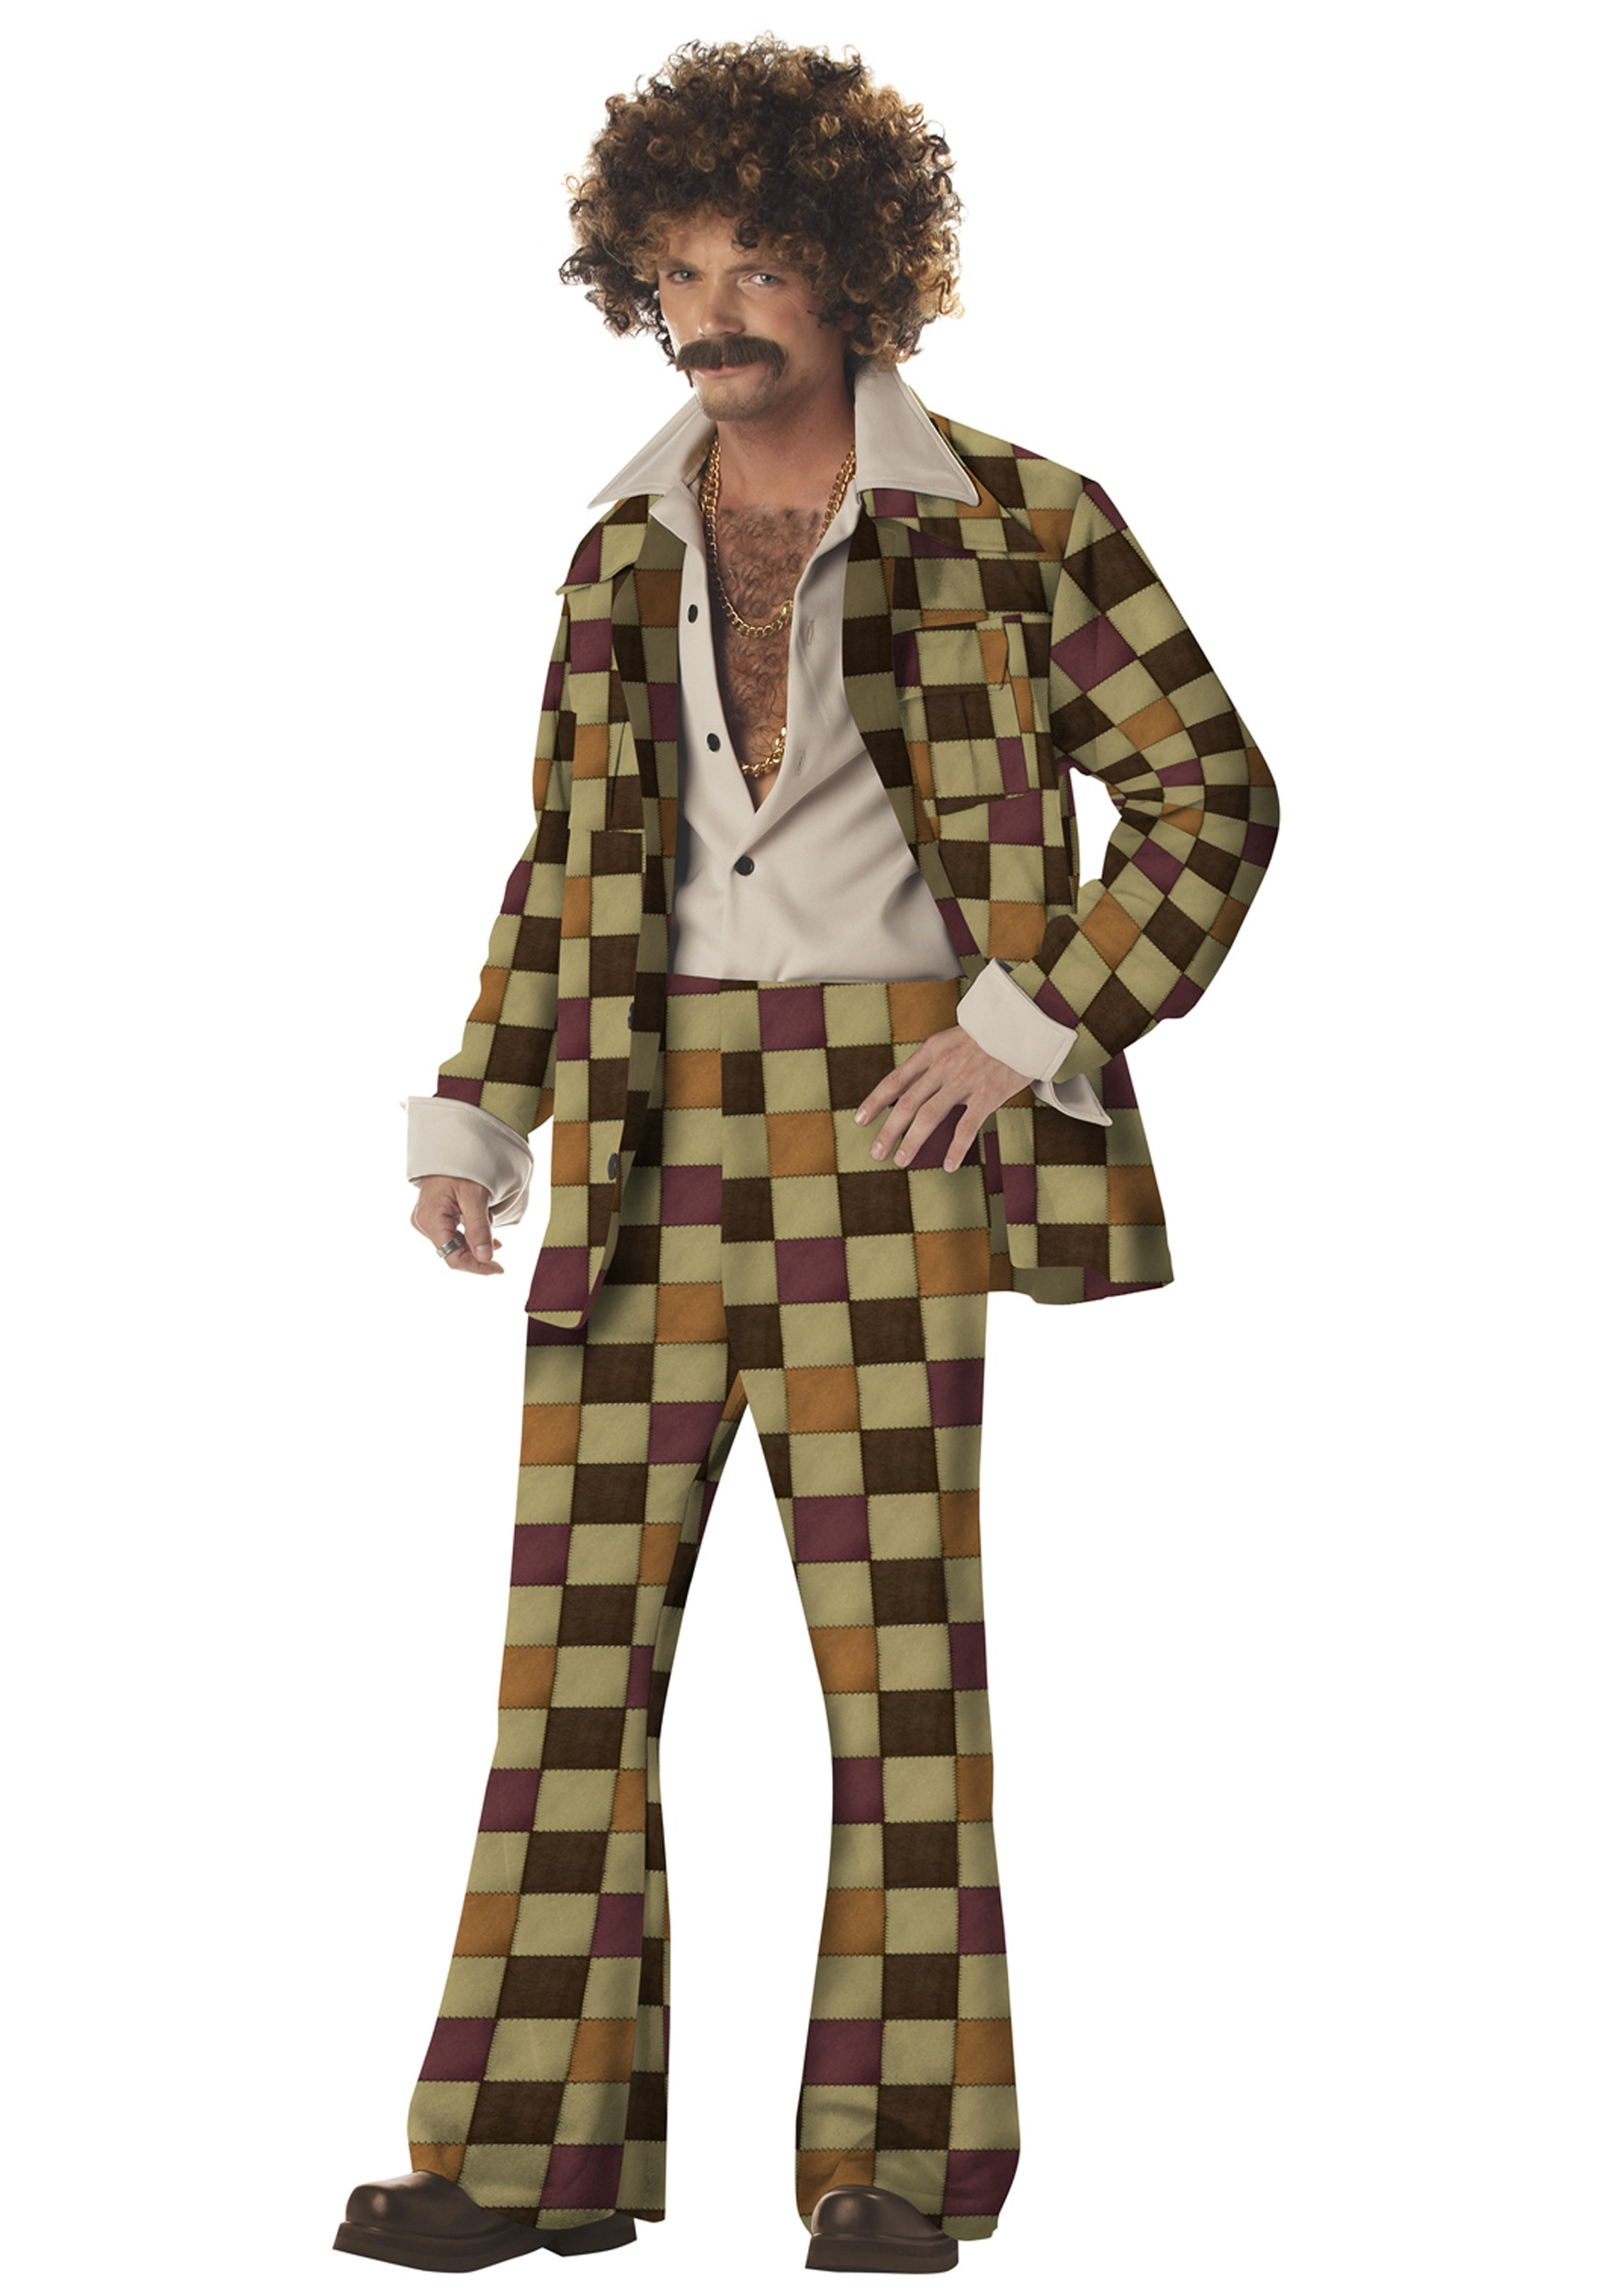 Men's Disco Leisure 70's Costume